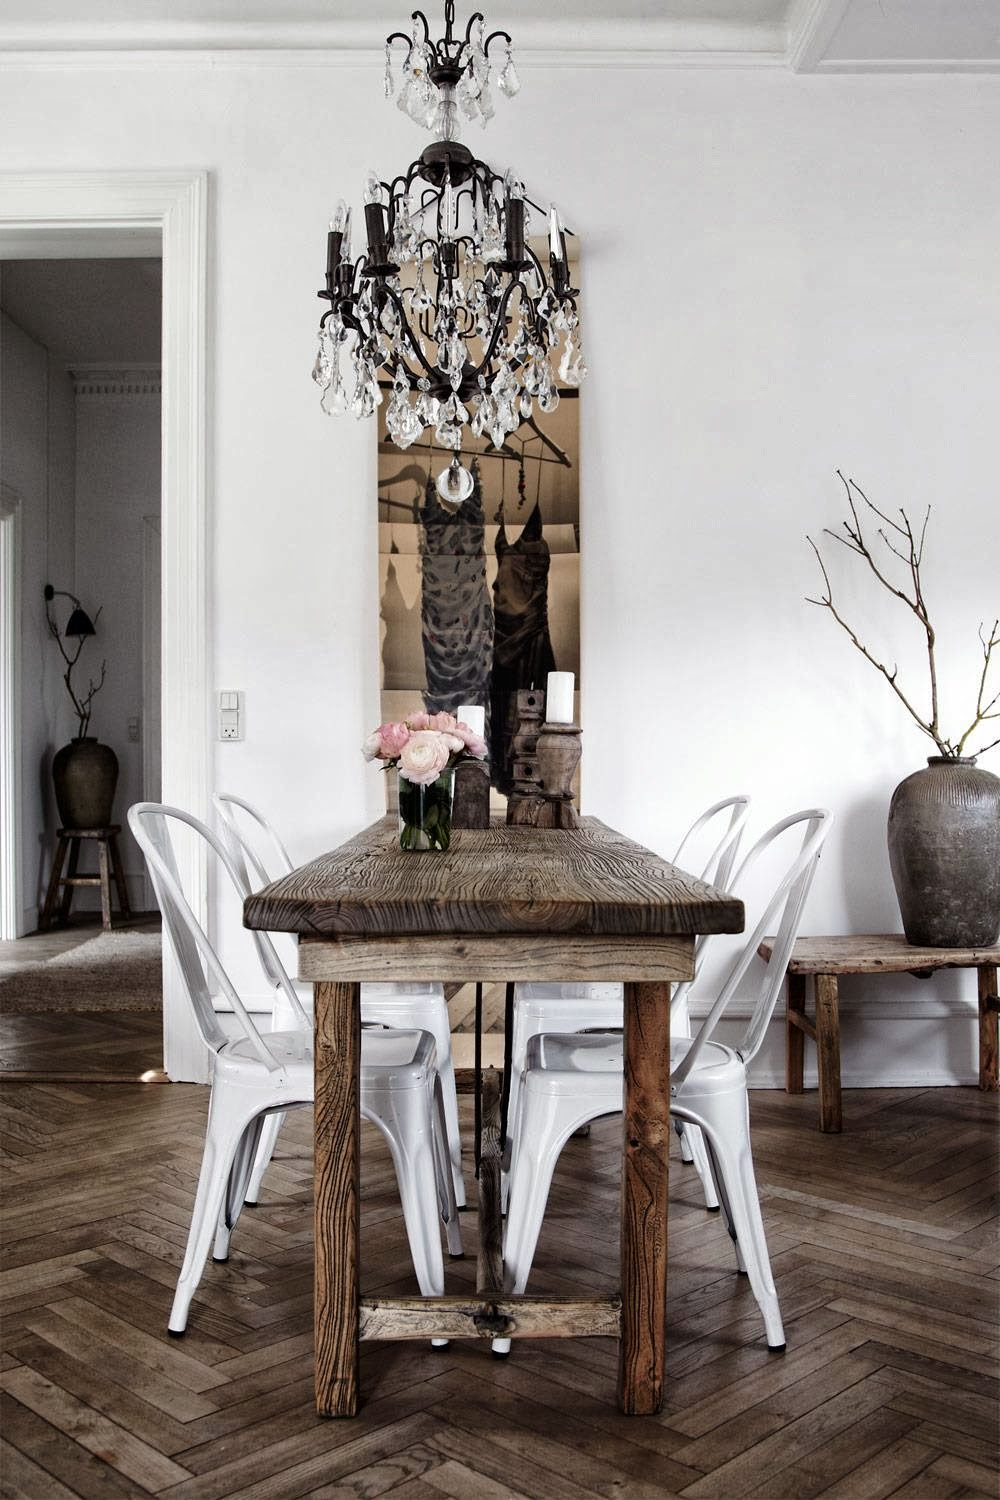 White folix chairs with wood dining table